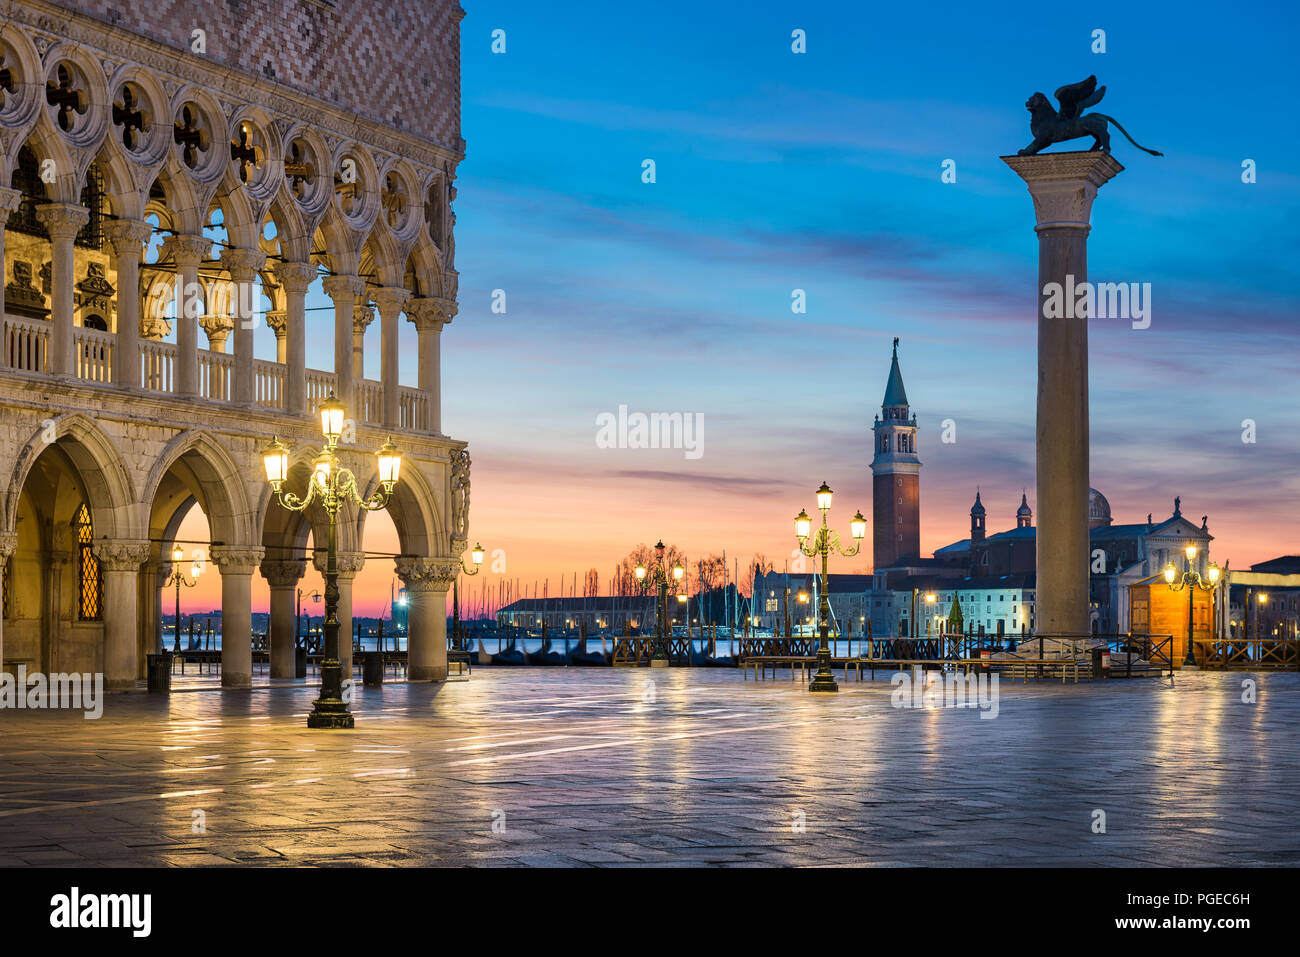 Famous San Marco square at night in Venice, Italy - Stock Image